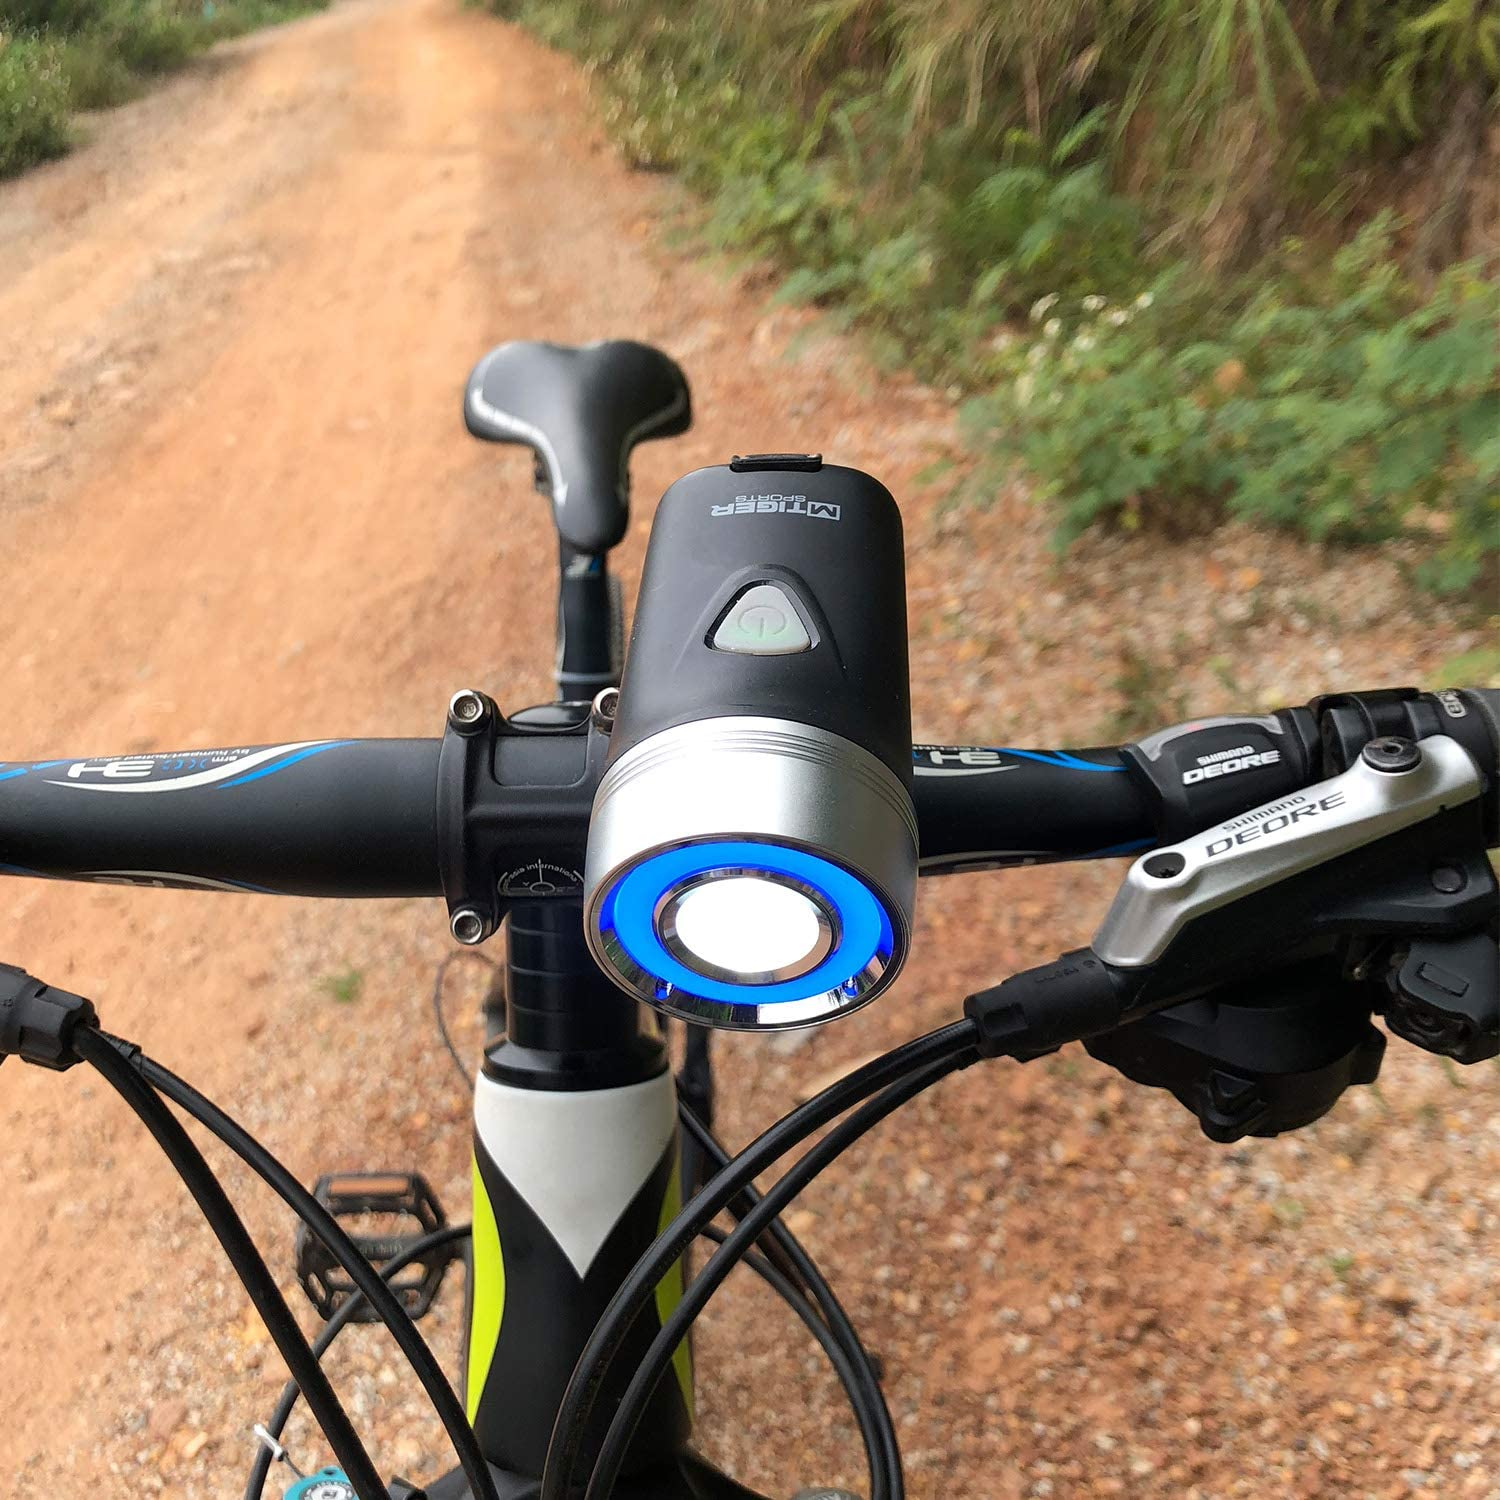 M-Tiger Cyclo 500 Lumen Halo USB Rechargeable Bicycle Headlight